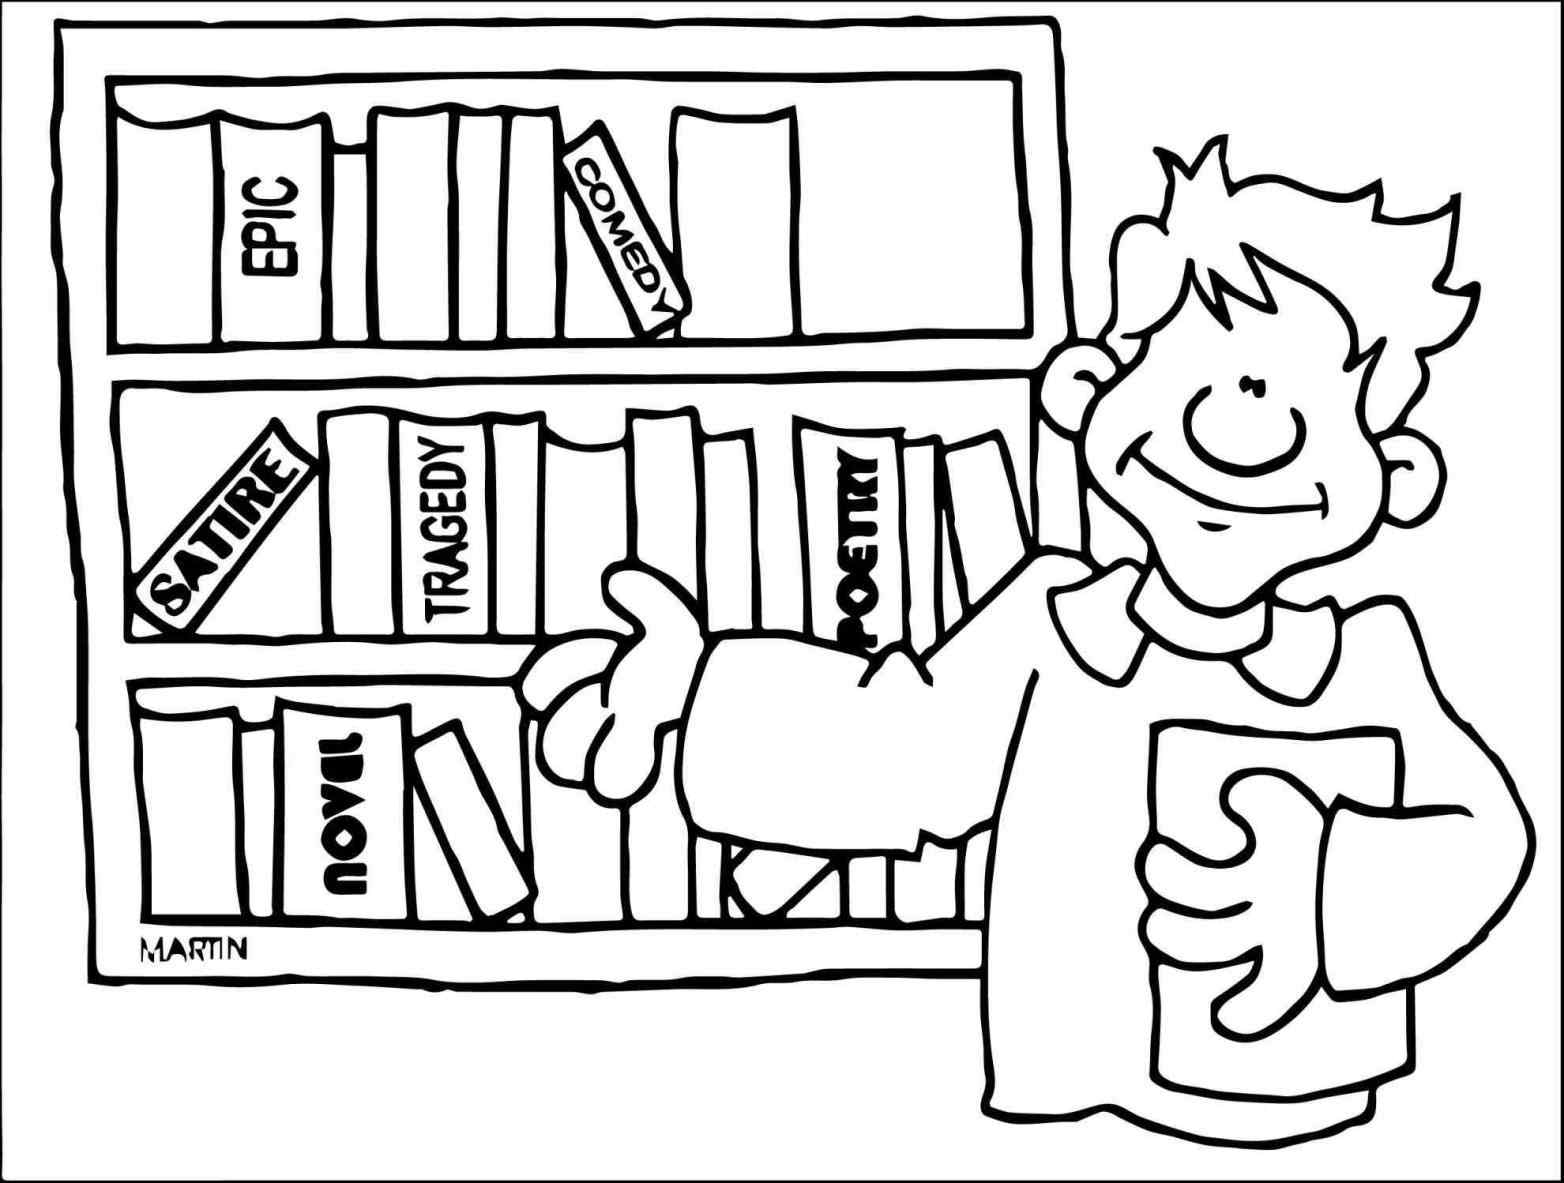 Bookcase drawing at getdrawings. Bookshelf clipart black and white